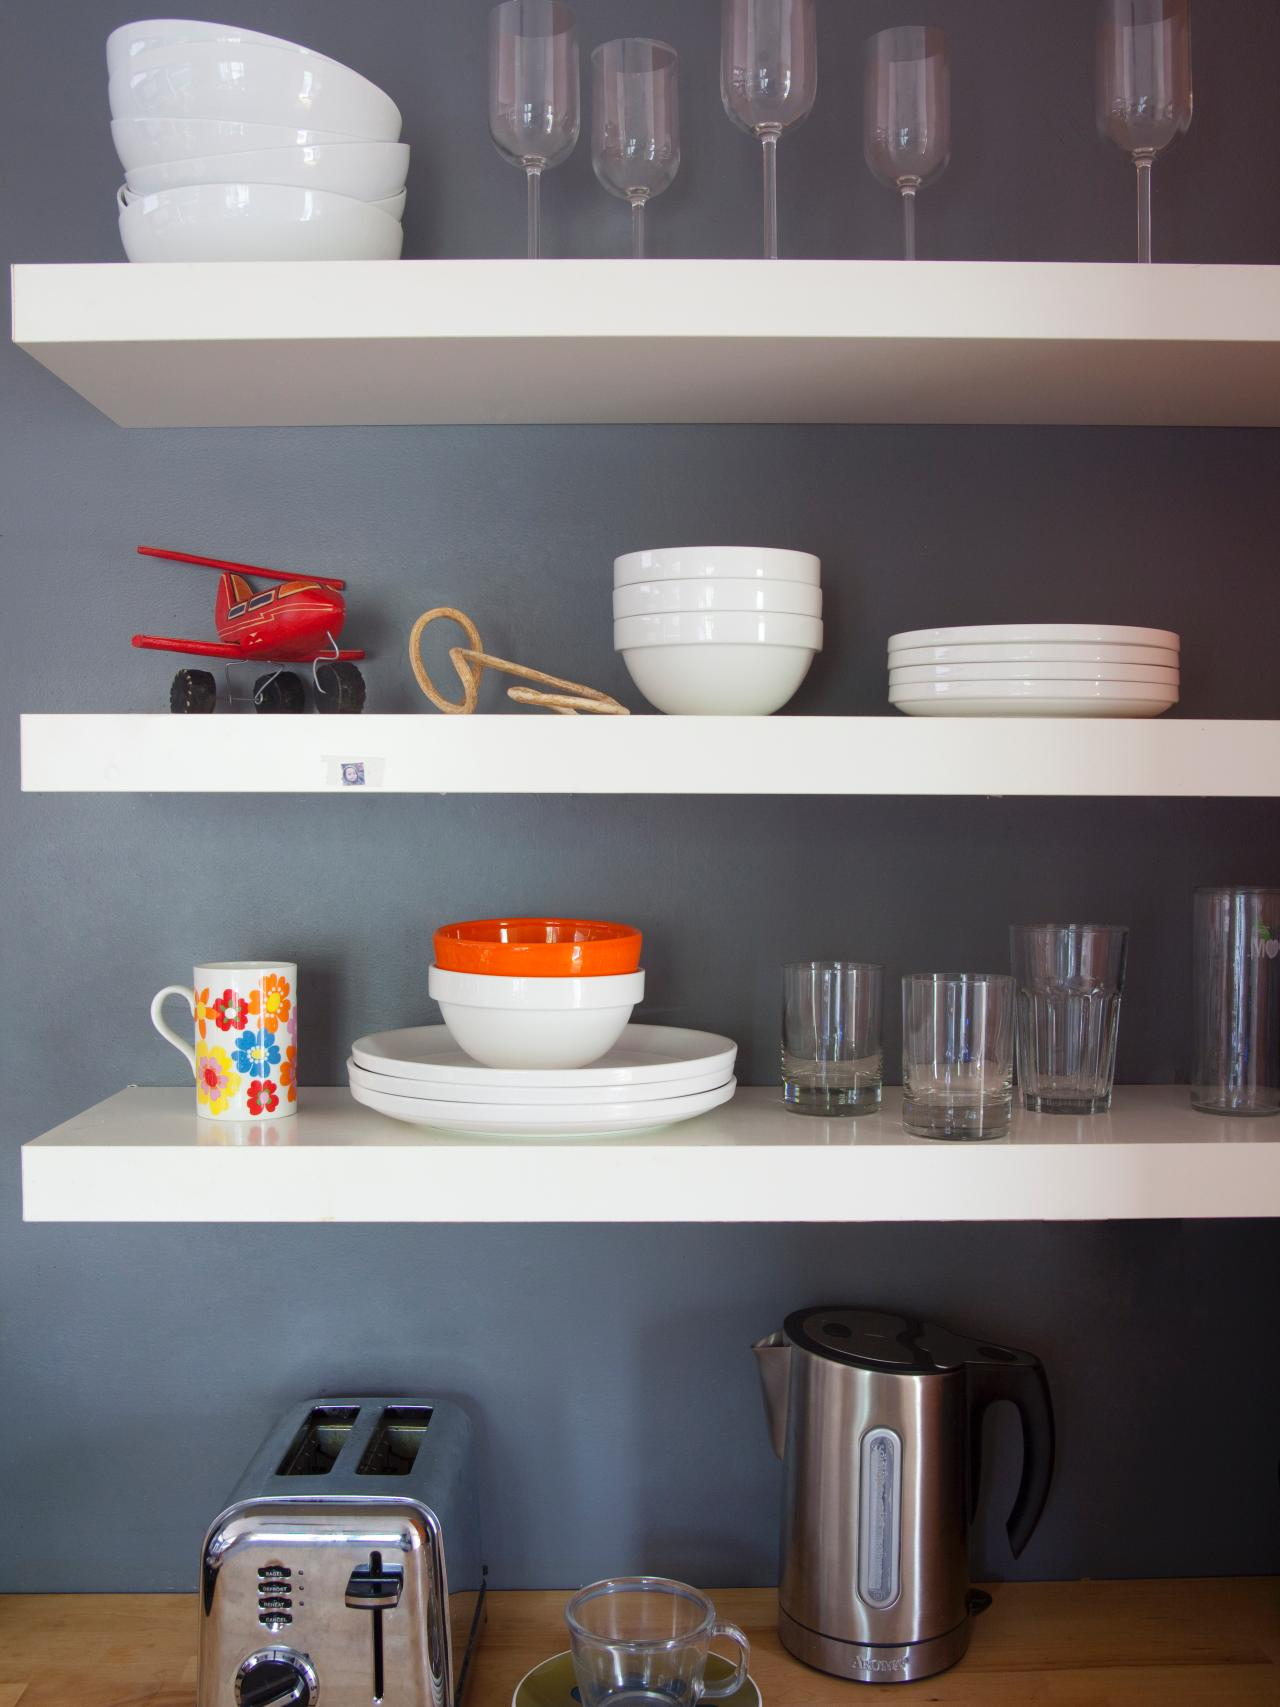 Tips for open shelving in the kitchen kitchen ideas for Open shelves in kitchen ideas